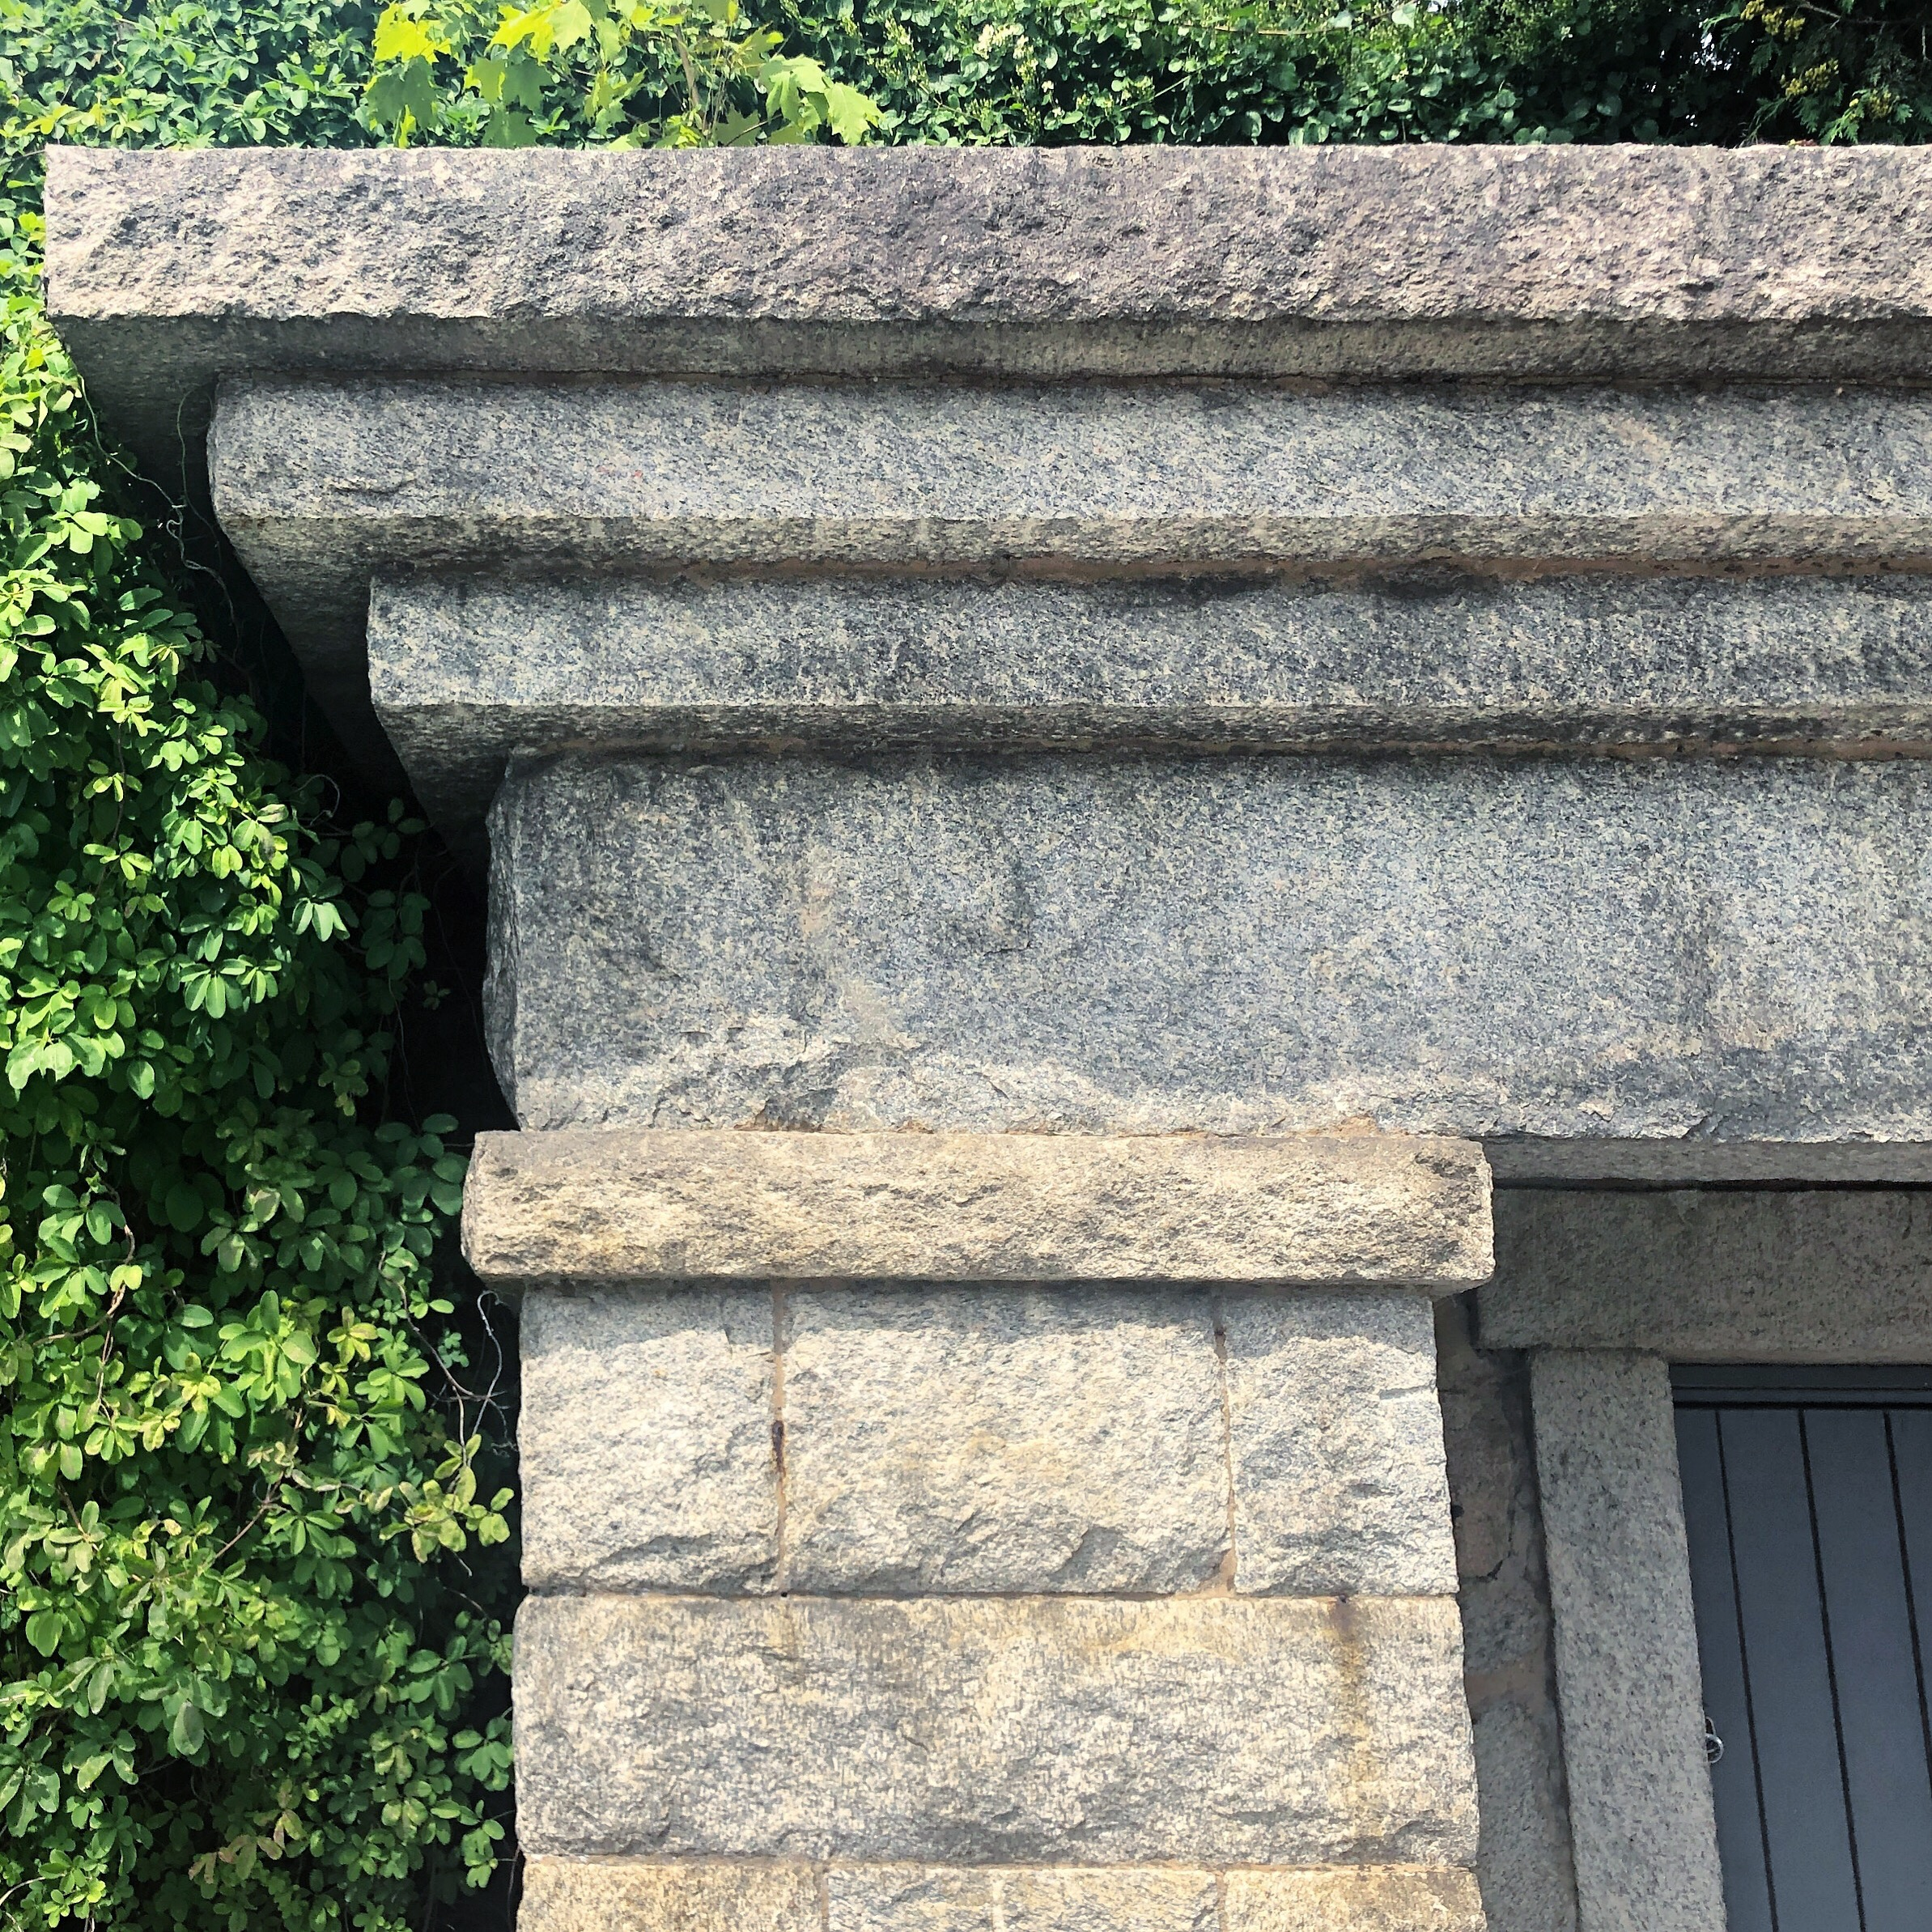 Granite piers and lintels are massive, but proportional to one another